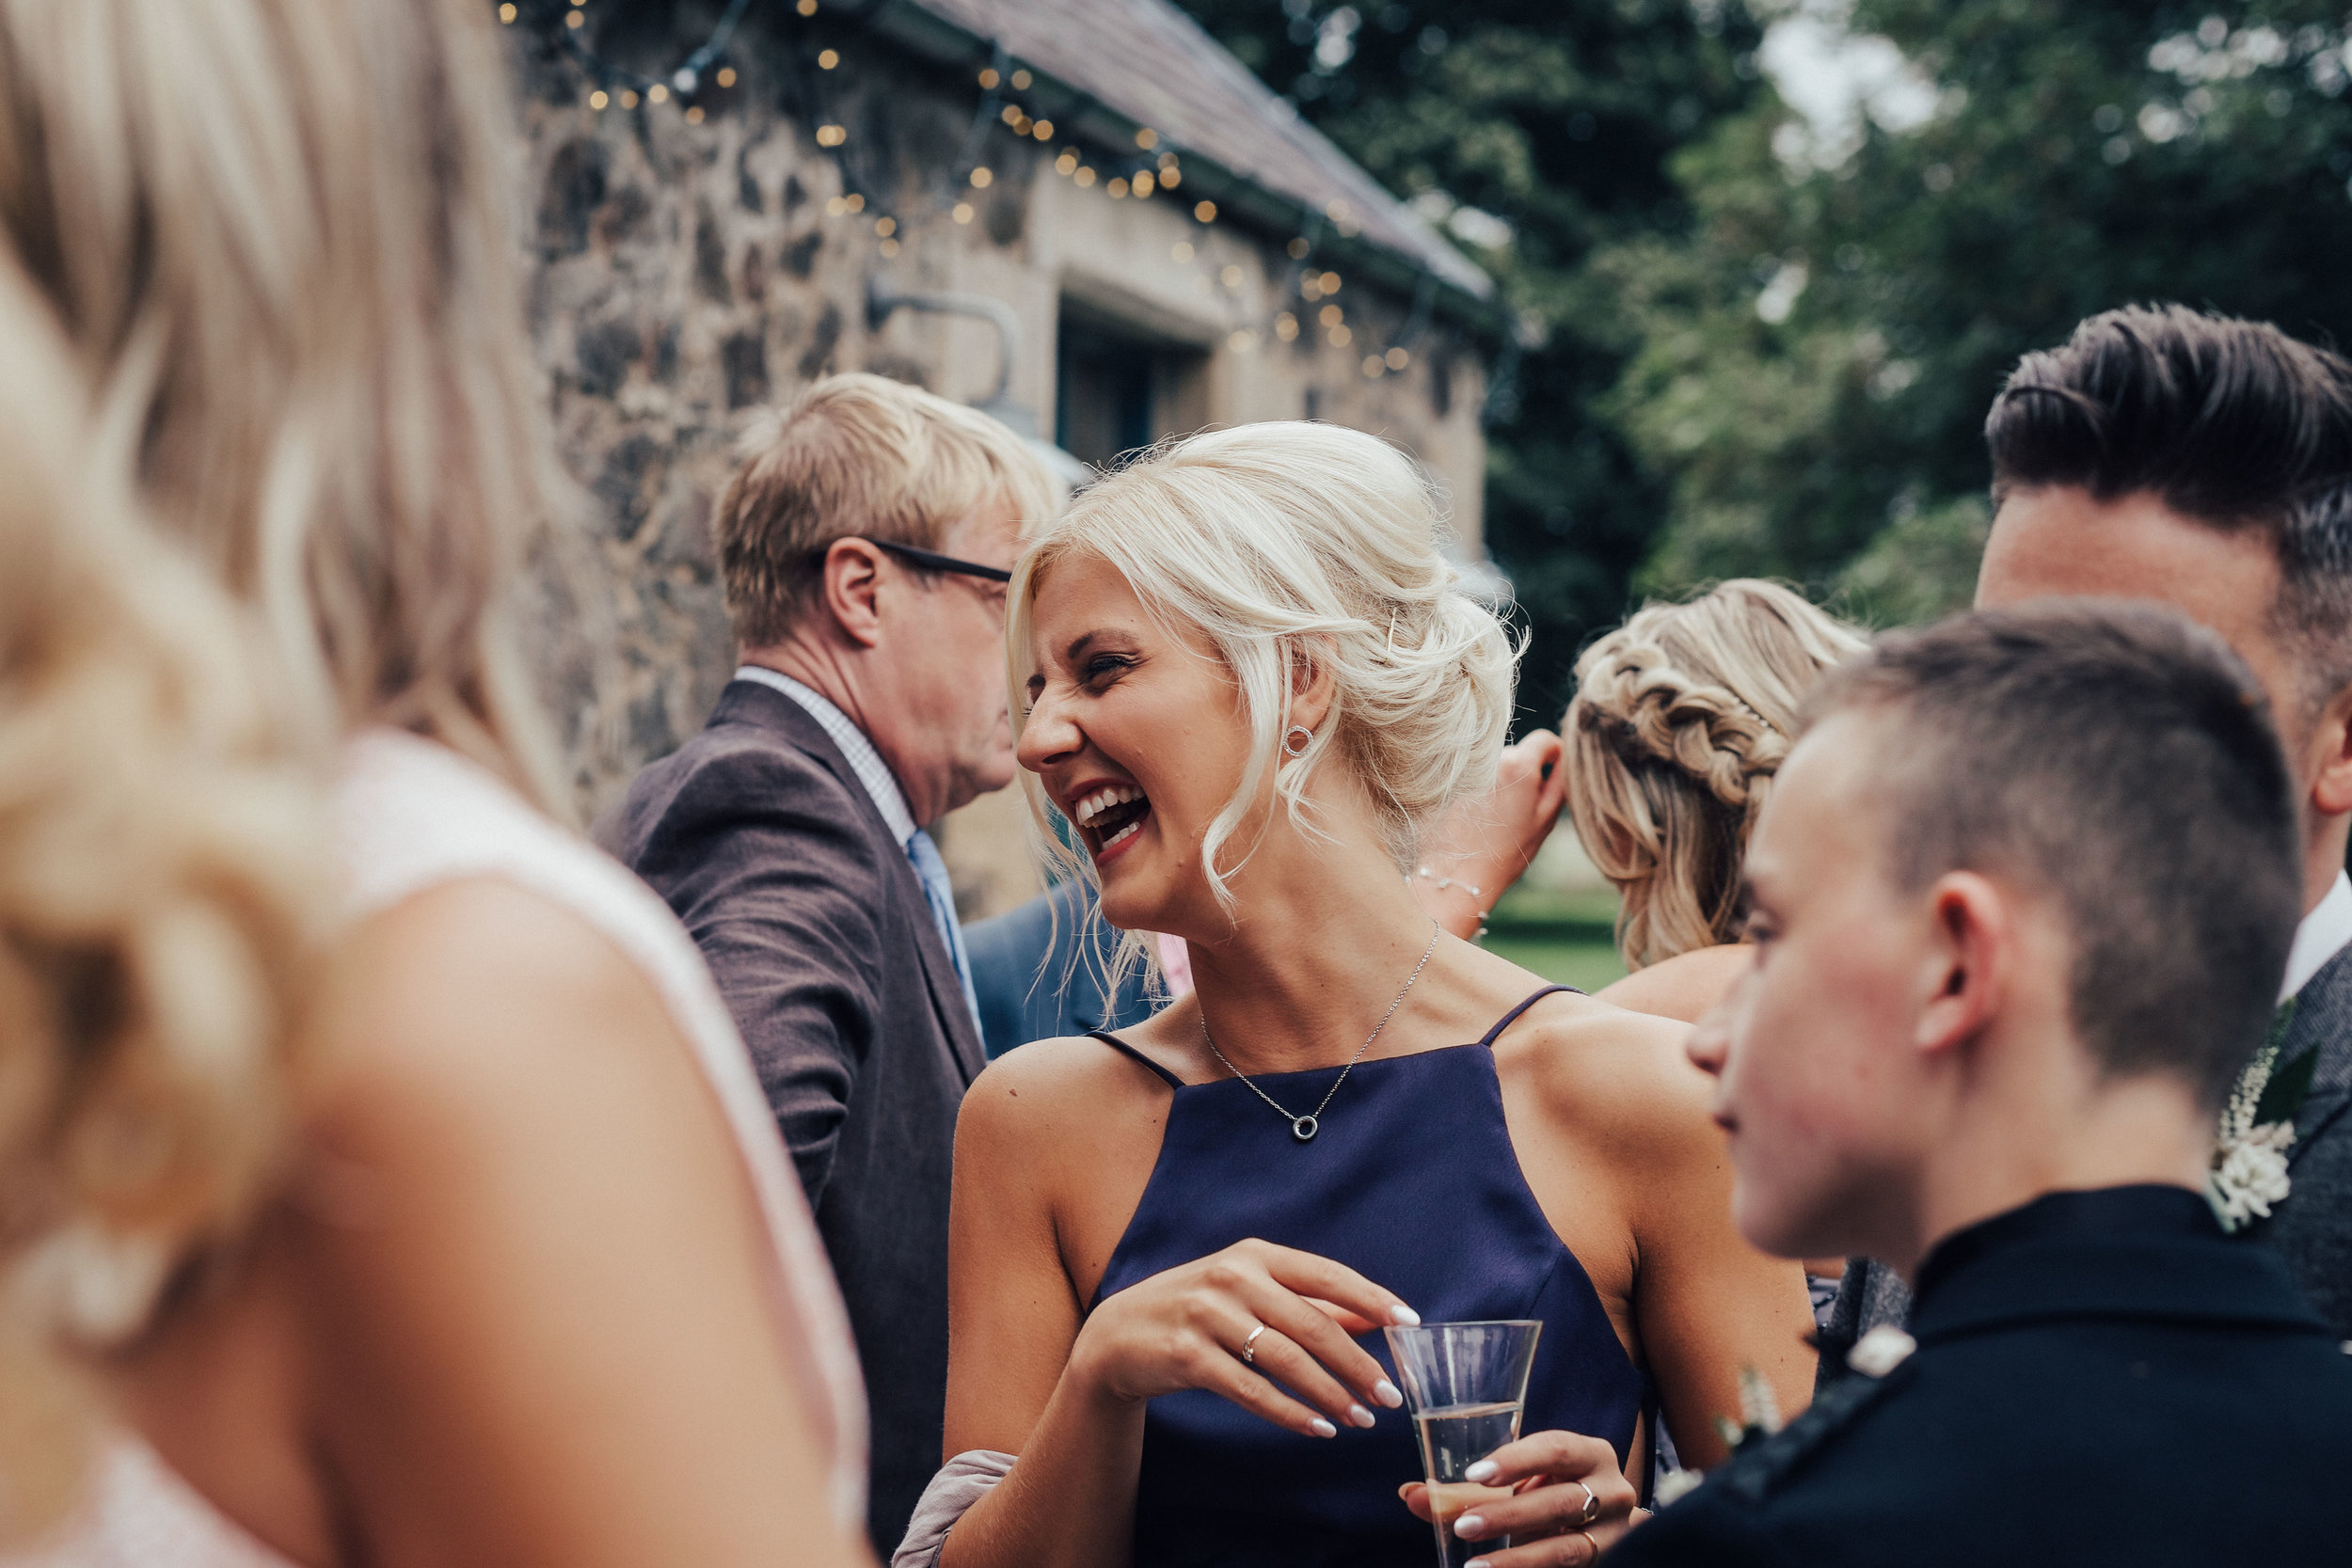 BYRE_AT_INCHYRA_WEDDING_PHOTOGRAPHER_PJ_PHILLIPS_PHOTOGRAPHY_KAYLEIGH_ANDREW_128.jpg